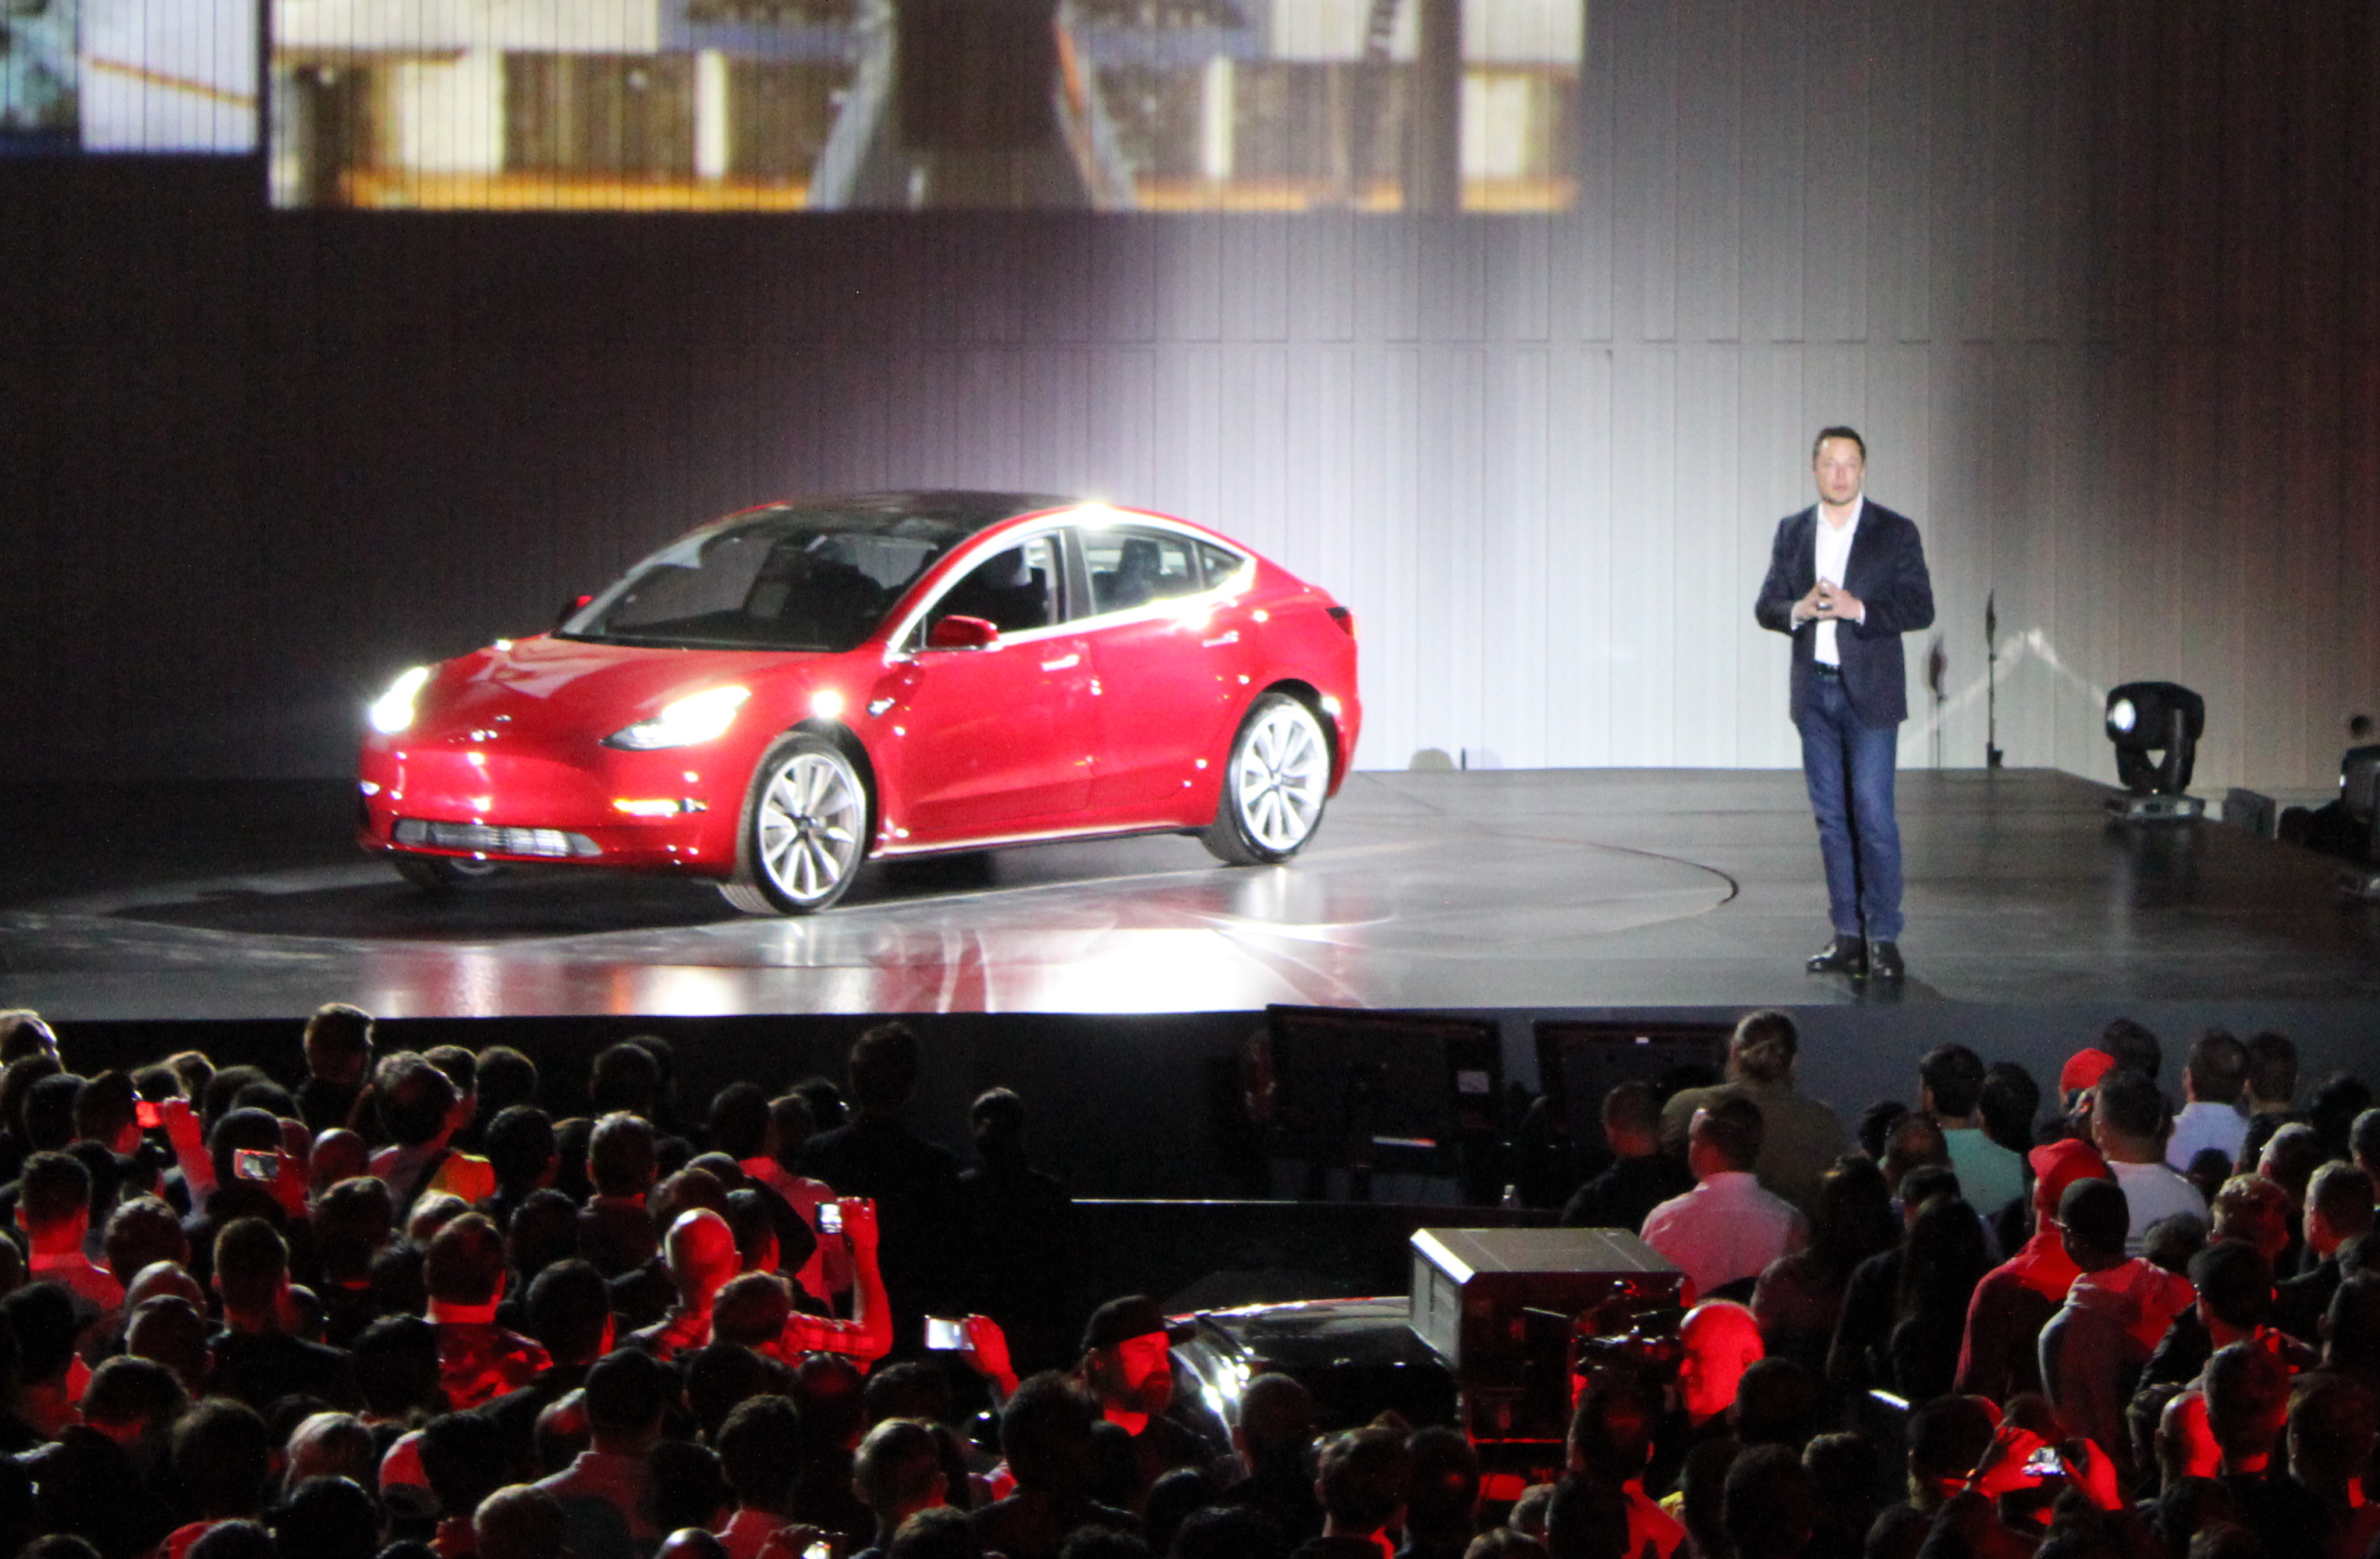 Musk Tesla The Elon Musk Expresses Gratitude For Tesla Supporters Intends